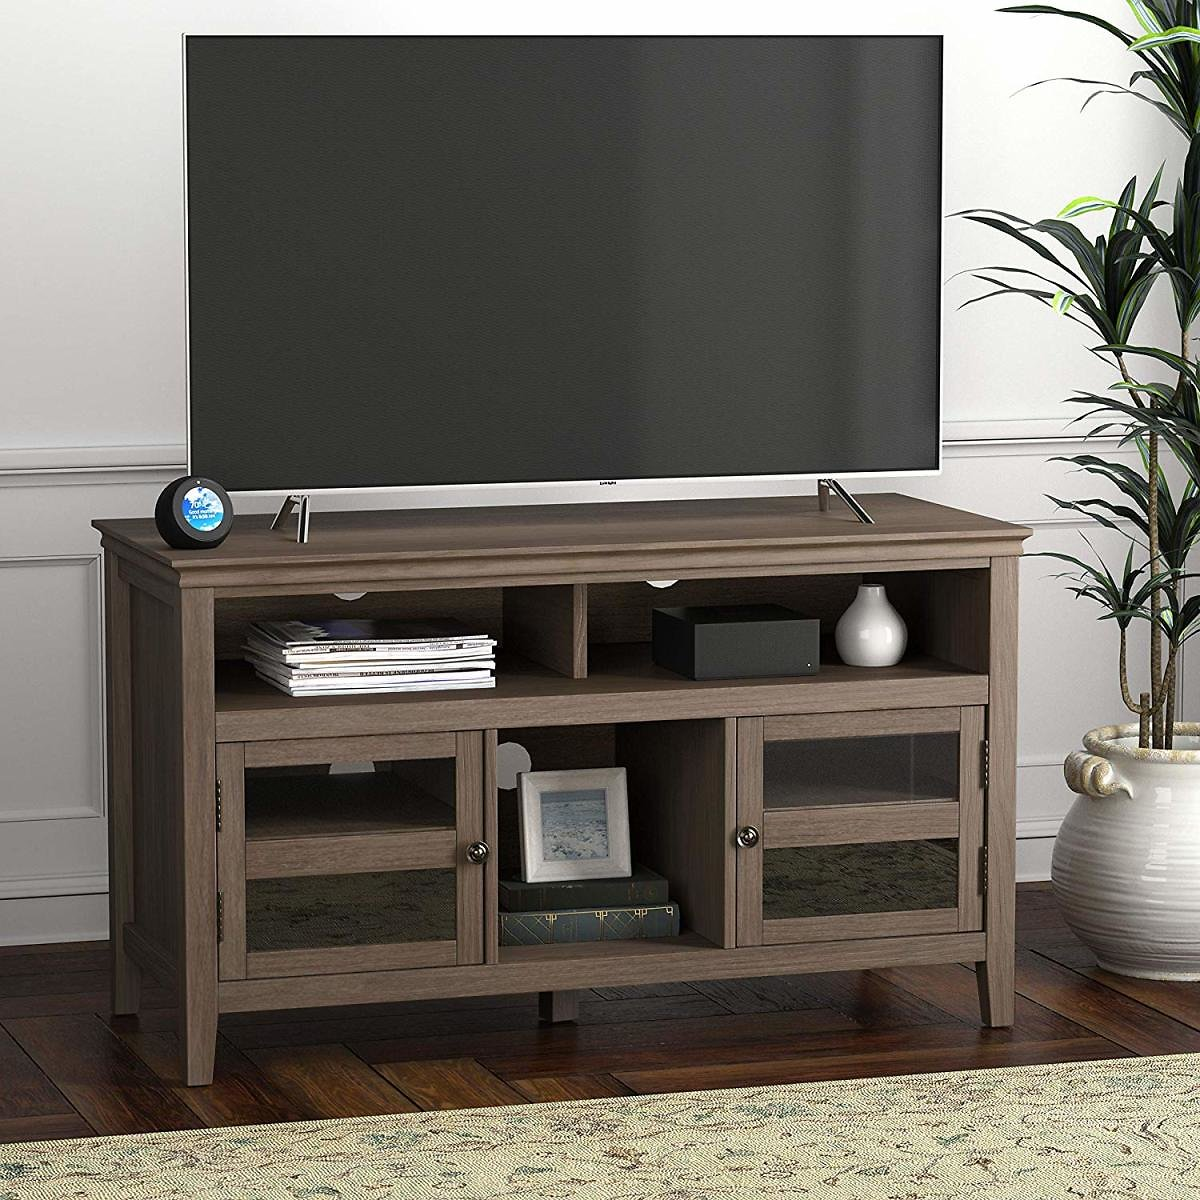 Ravenna Home Classic Solid Wood Media Center, 47